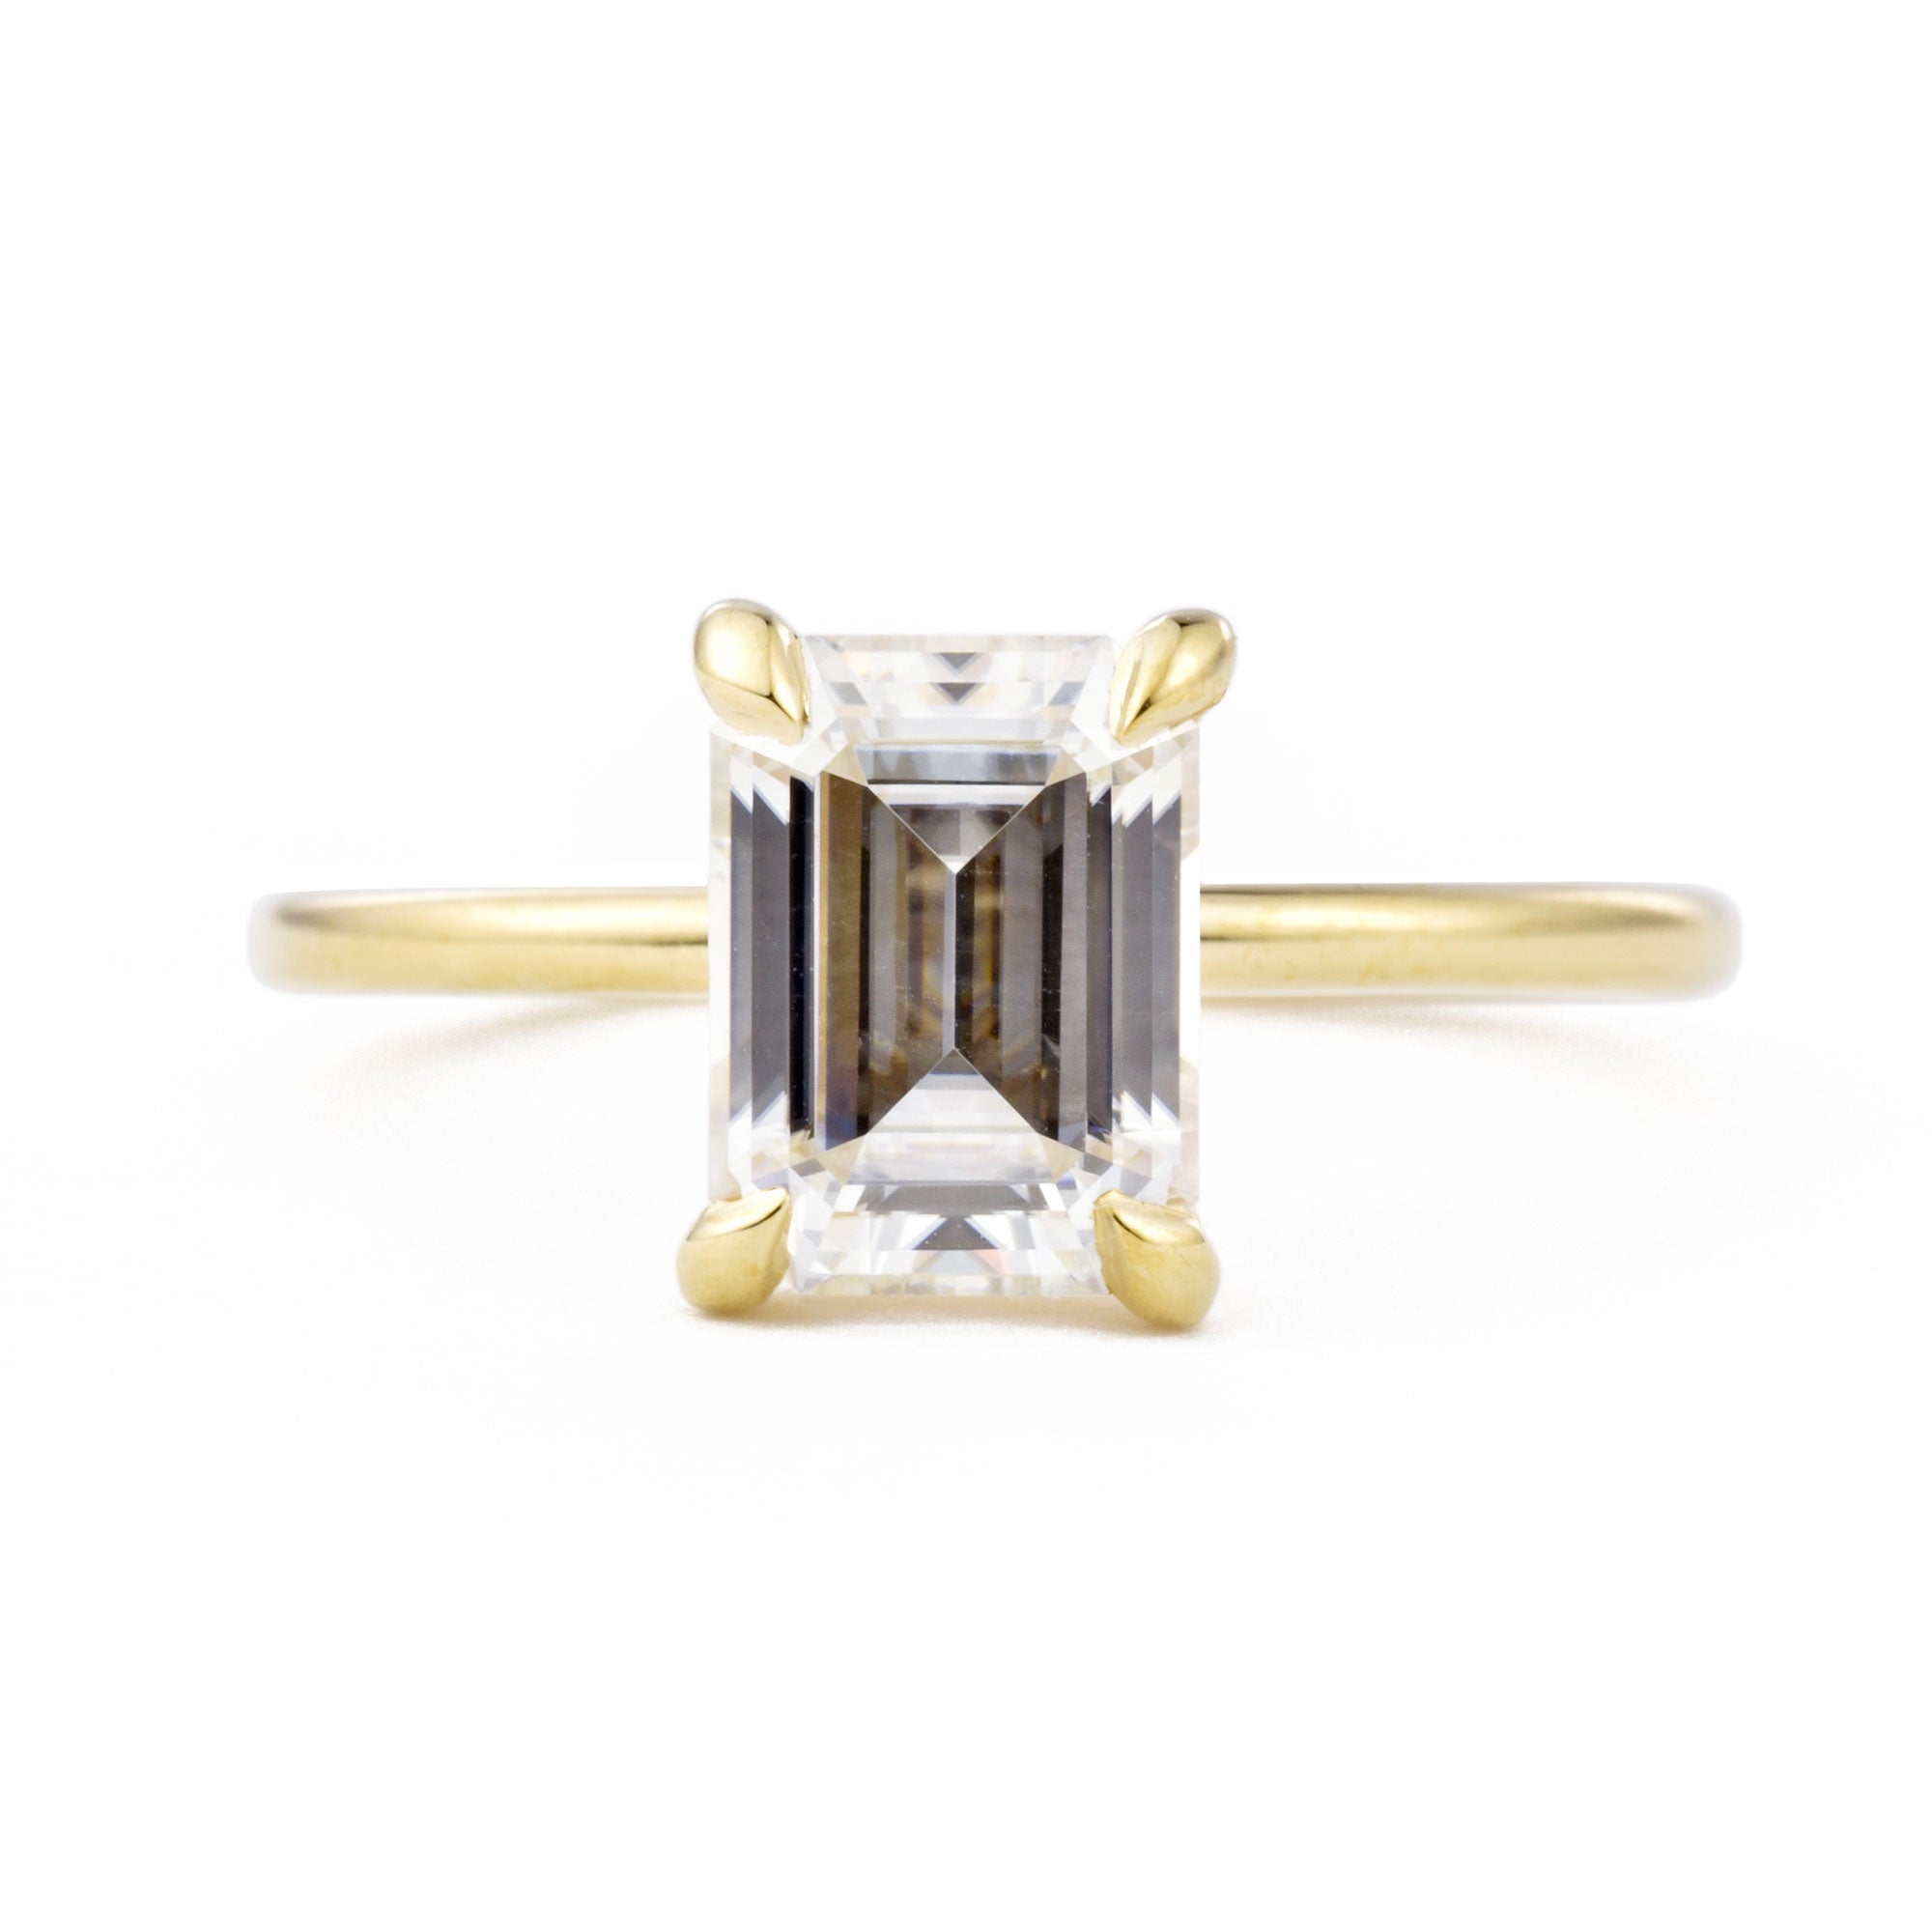 Vera 1.75ct Emerald Cut Moissanite Solitaire Engagement Ring in yellow gold shown from the front